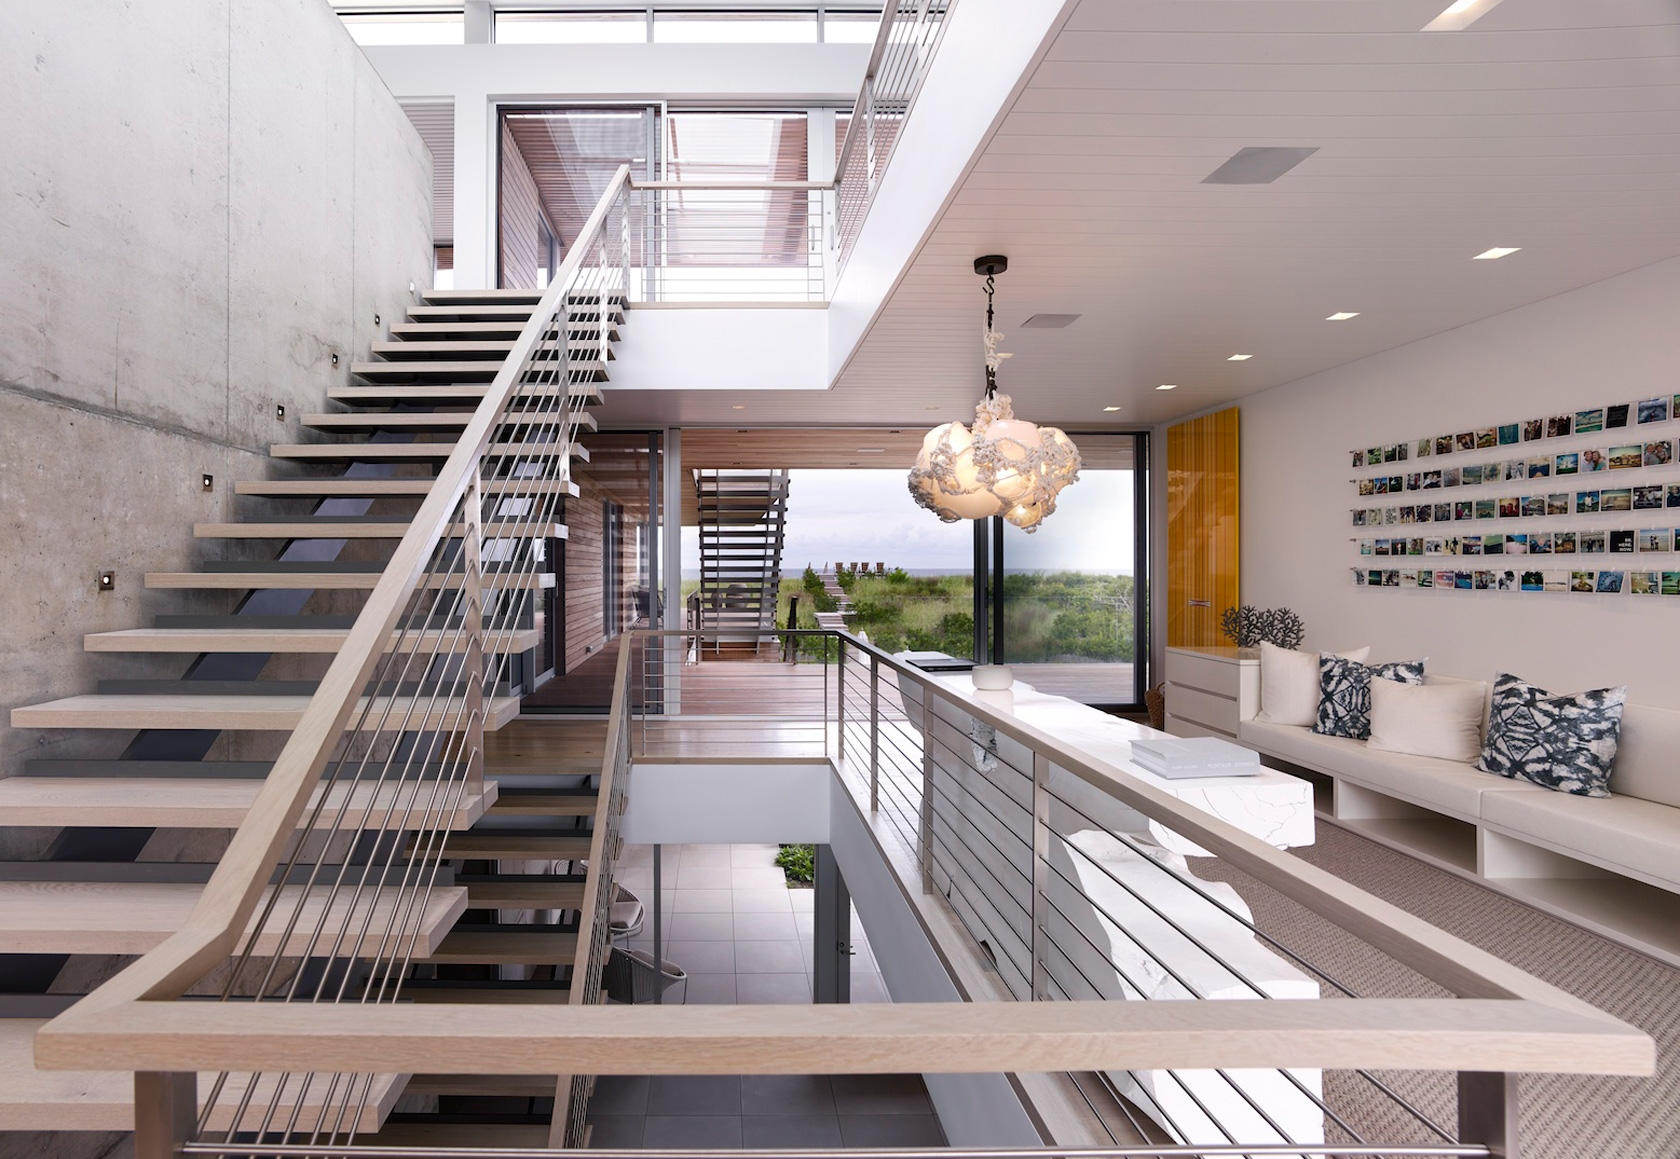 Bridgehampton, NY modern house interior stairs